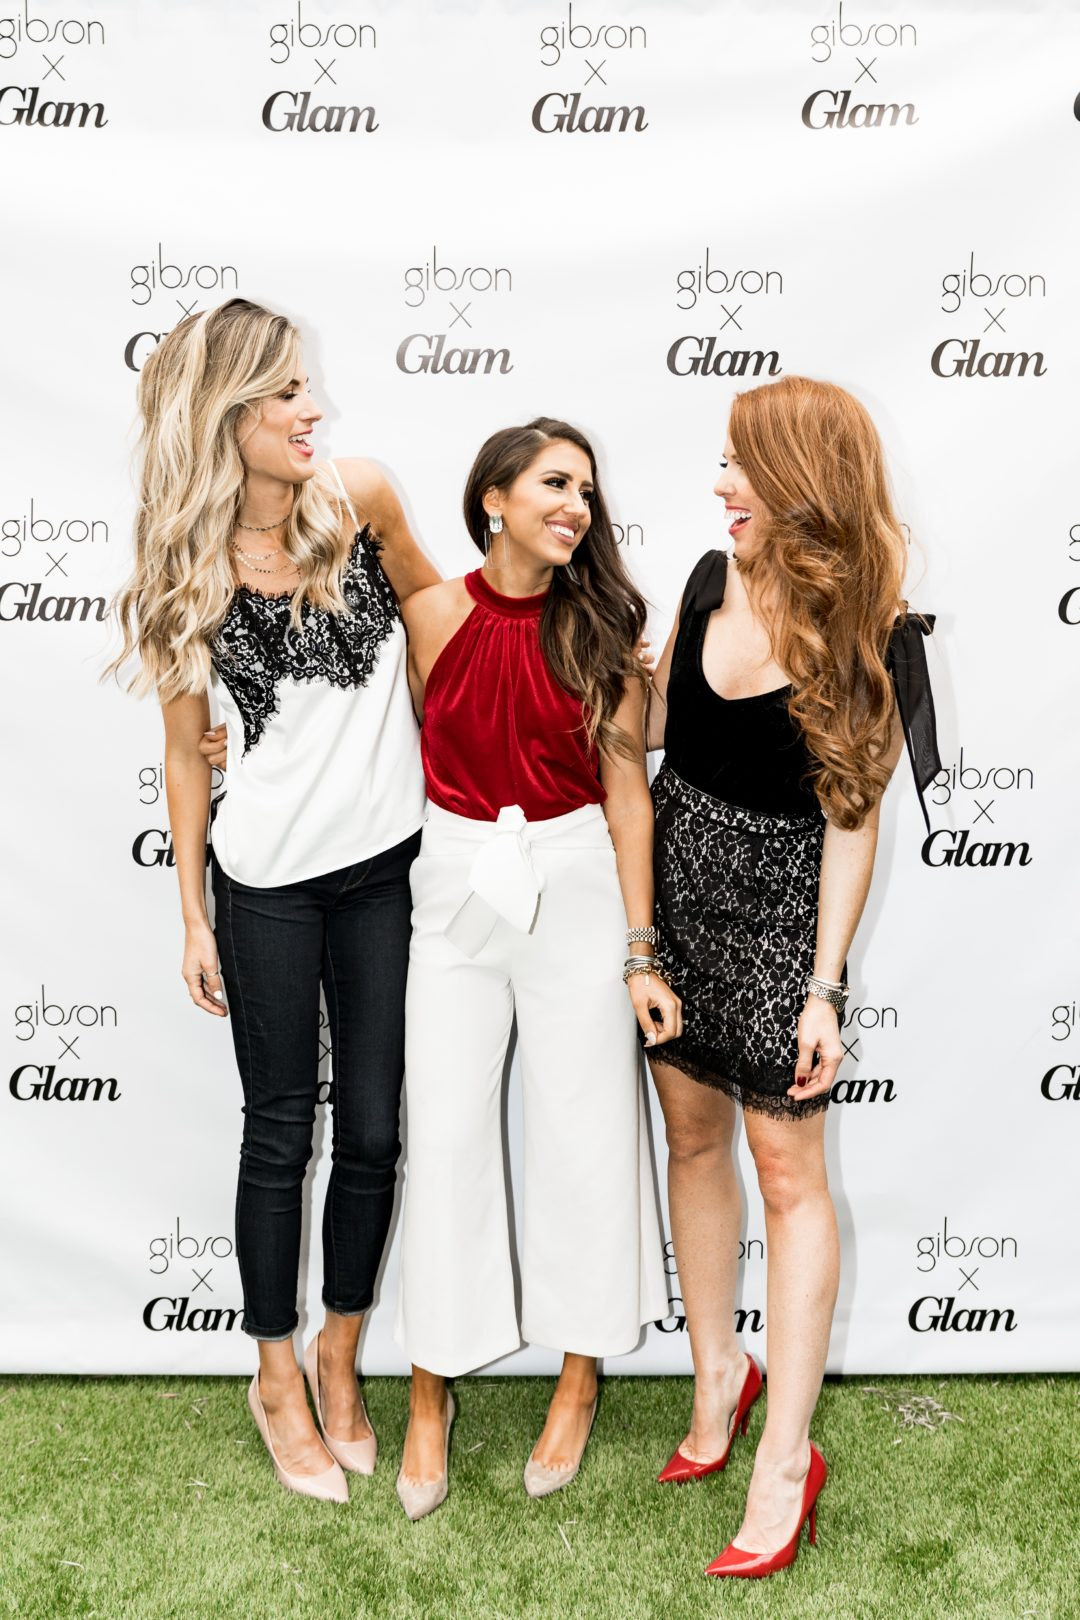 gibson glam squad lace holiday outfit ideas